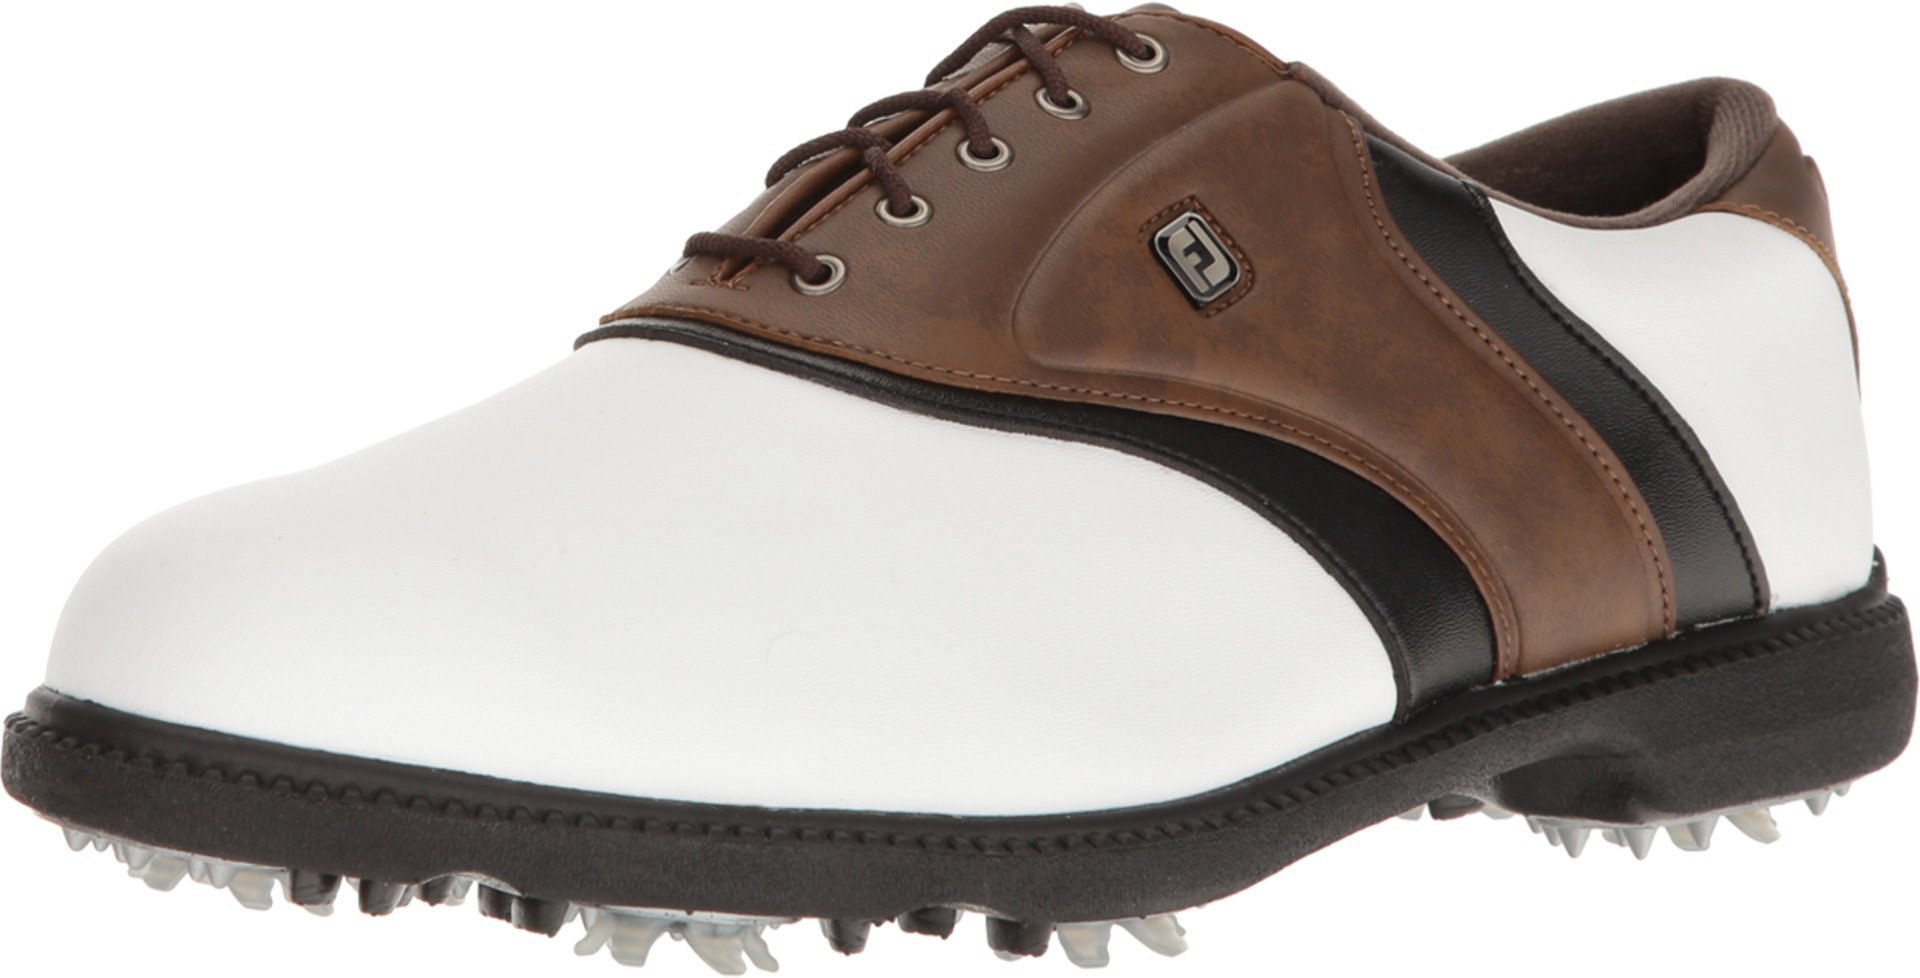 FootJoy FJ Originals Golf Shoes (White/Brown, 10.5) by FootJoy